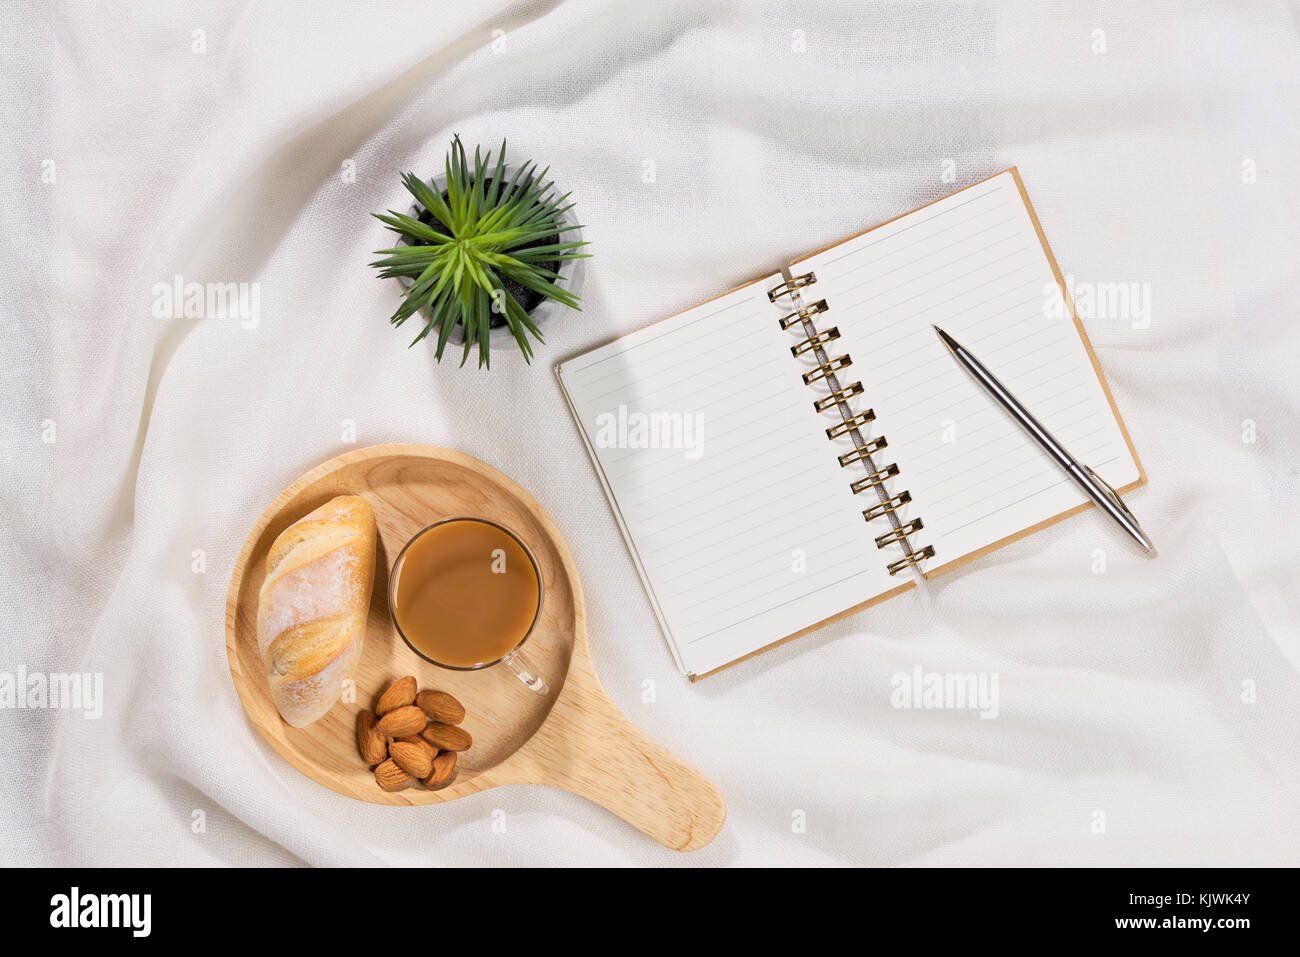 Cozy And Tasty Breakfast With Coffee Mug And Croissant With Paper Stock Photo Alamy